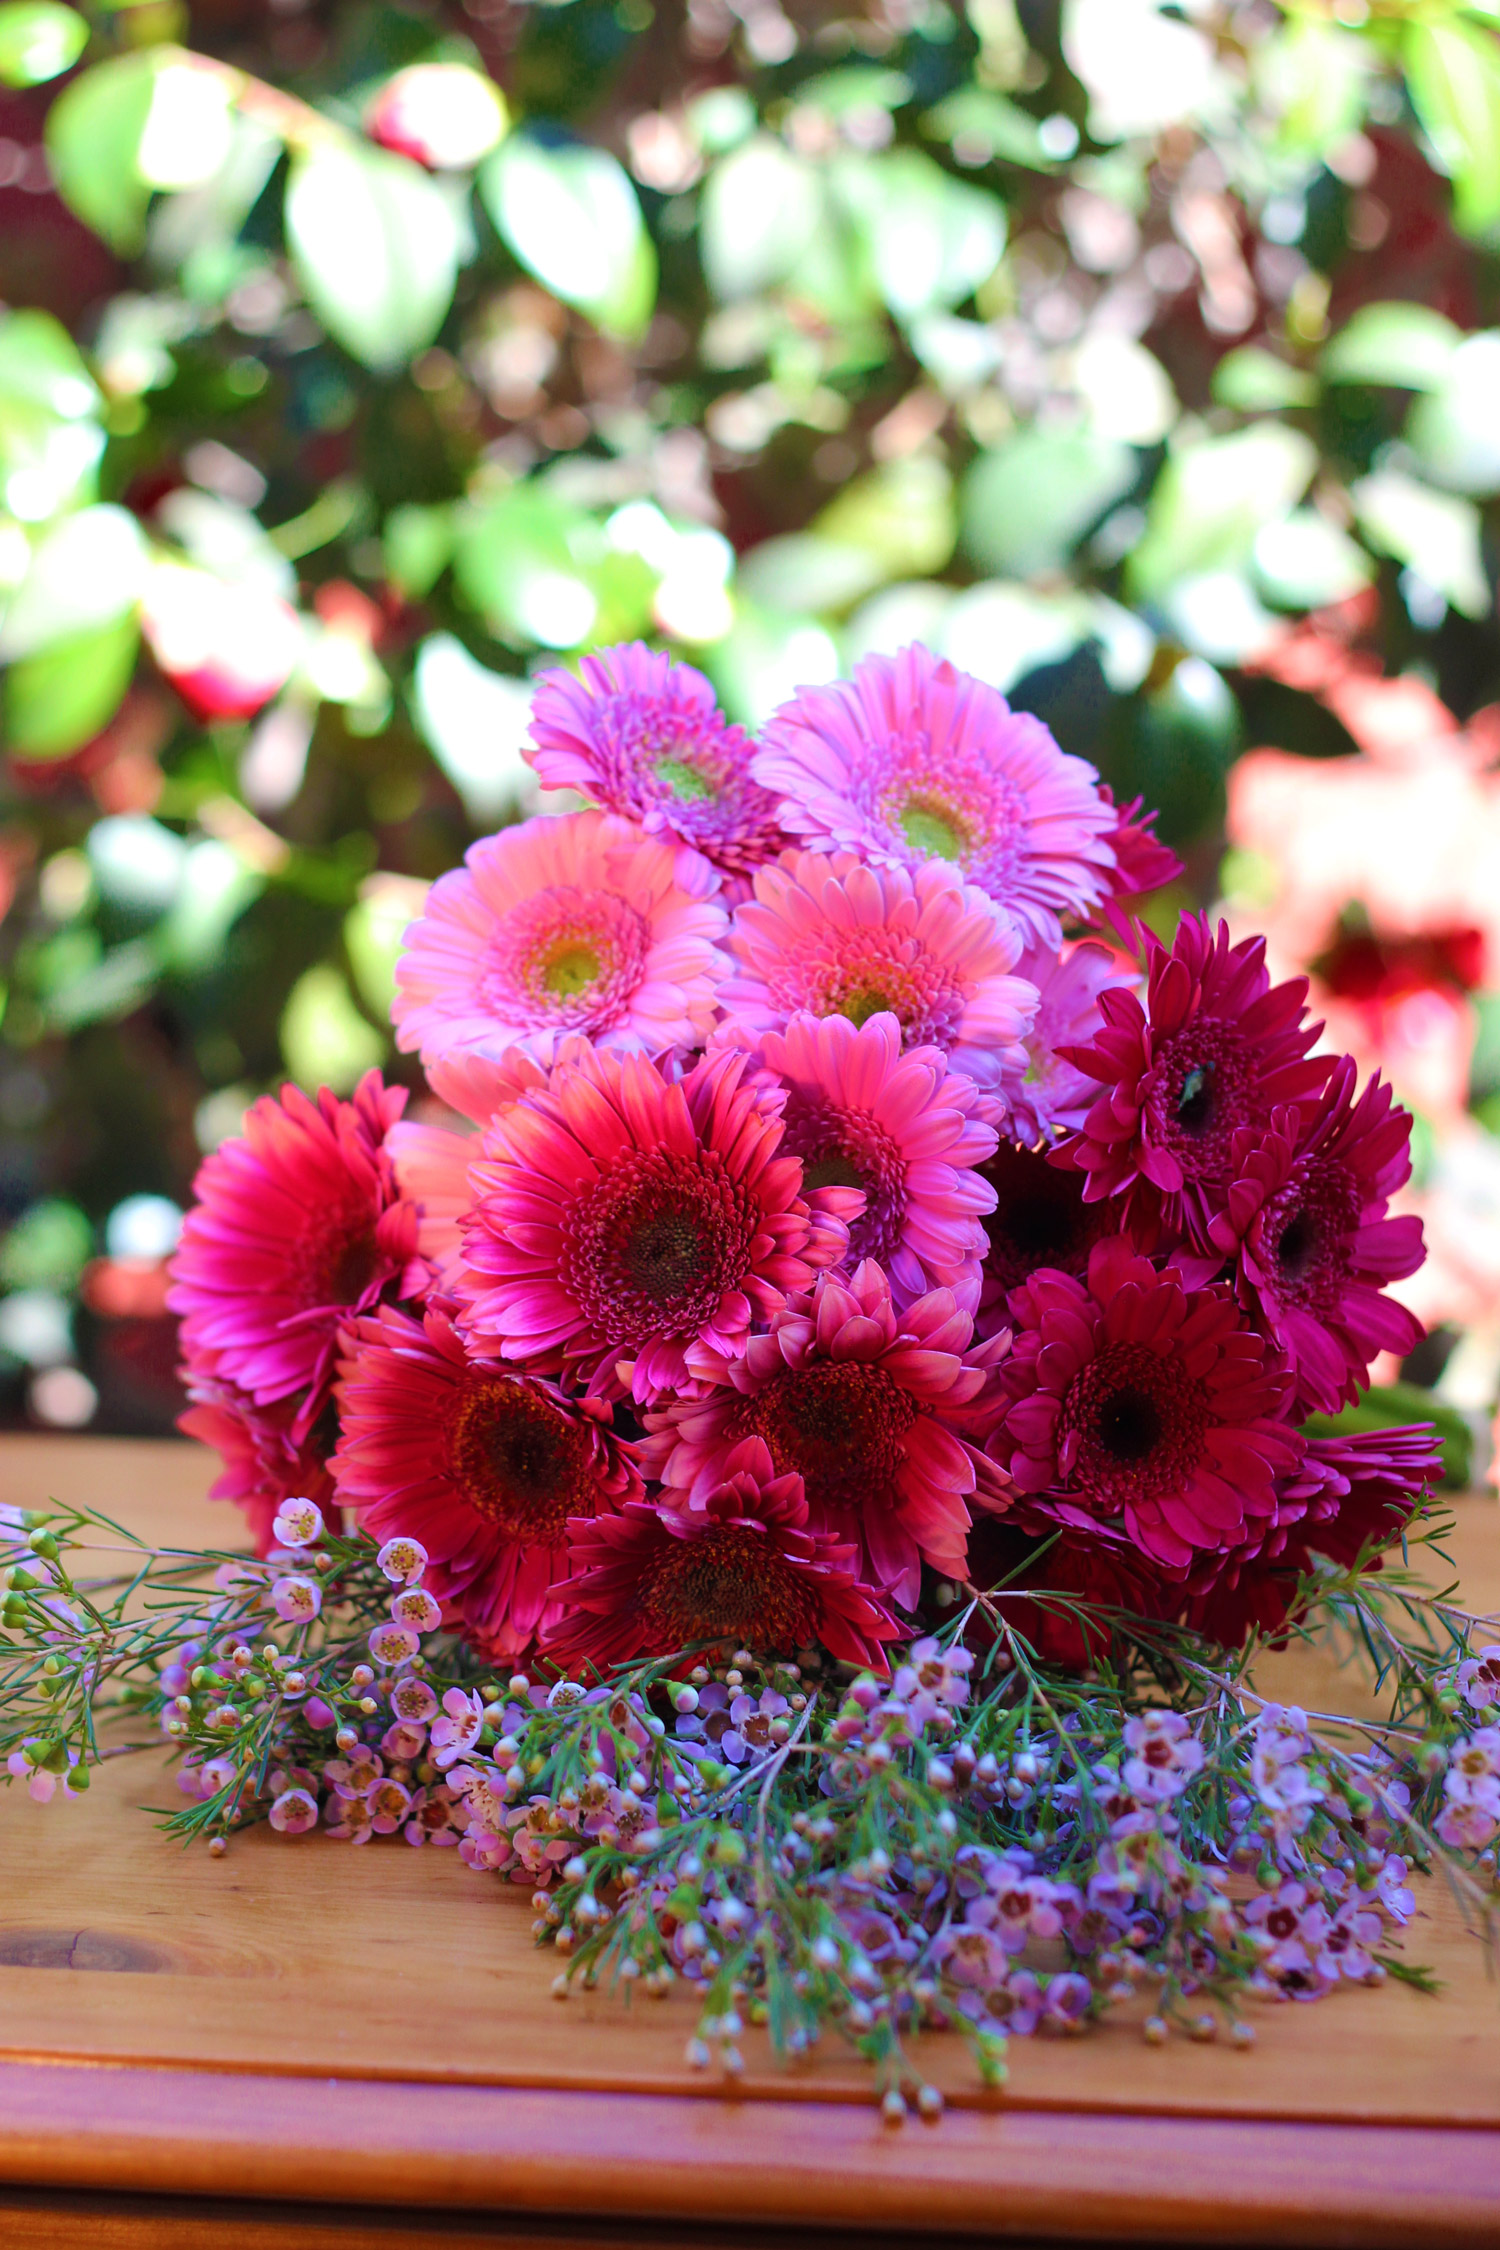 You sill use pink Wax Flower and pink Gerbers.